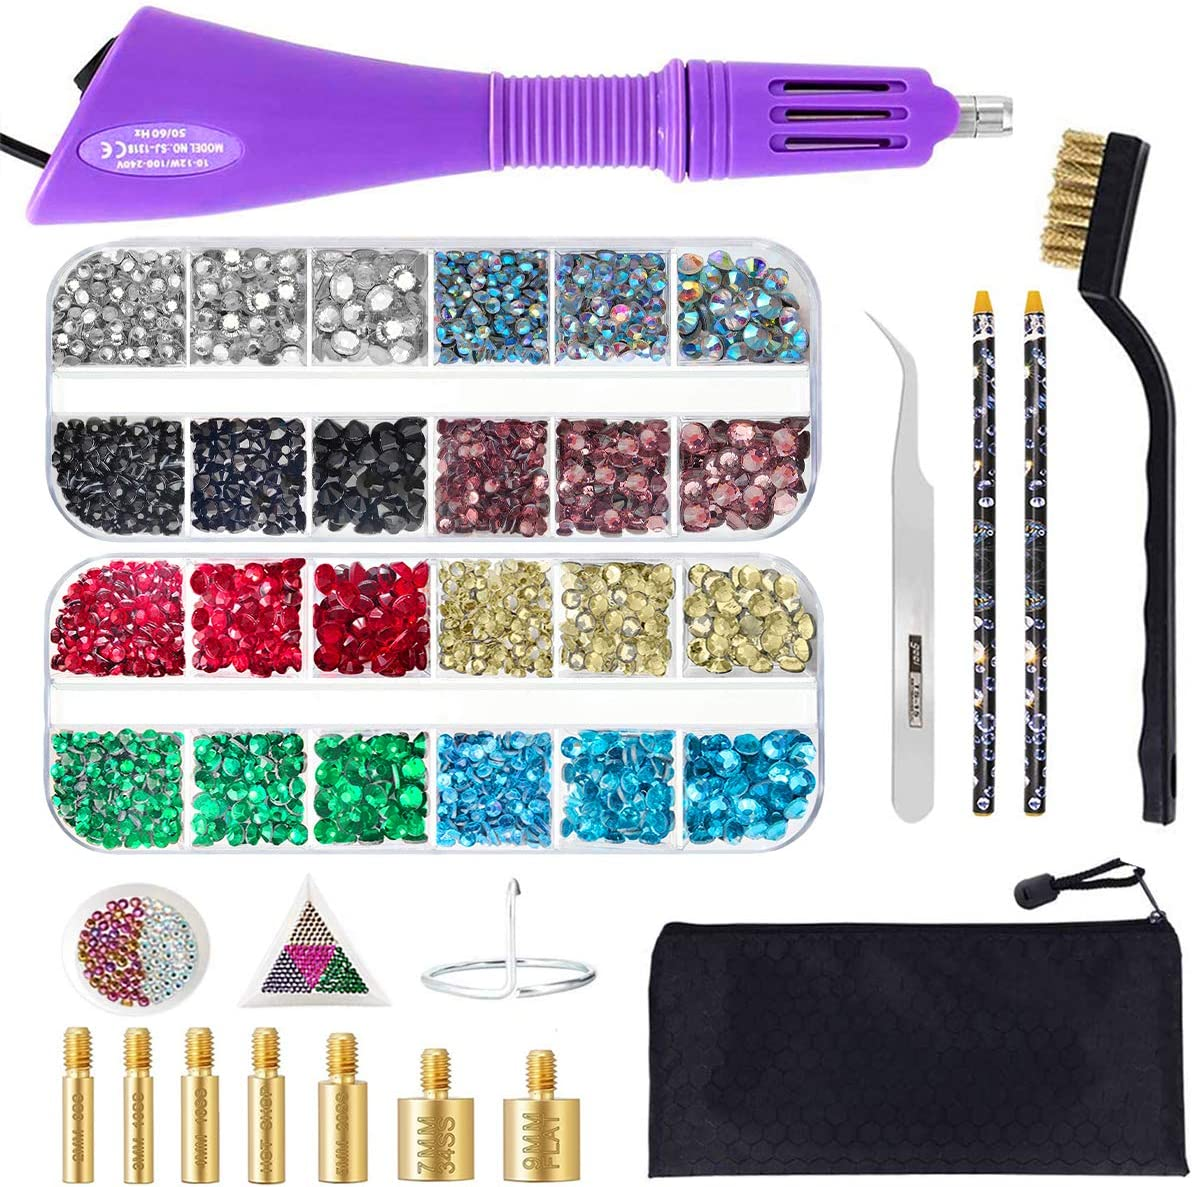 HOTFIX APPLICATOR TOOL BEDAZZLER KIT DIY HOT FIX RHINESTONES INCLUDE 7 TIPS SUPPORT STAND TWEEZERS CLEANING BRUSH WAX PENCILS AND 2400 RHINESTONE